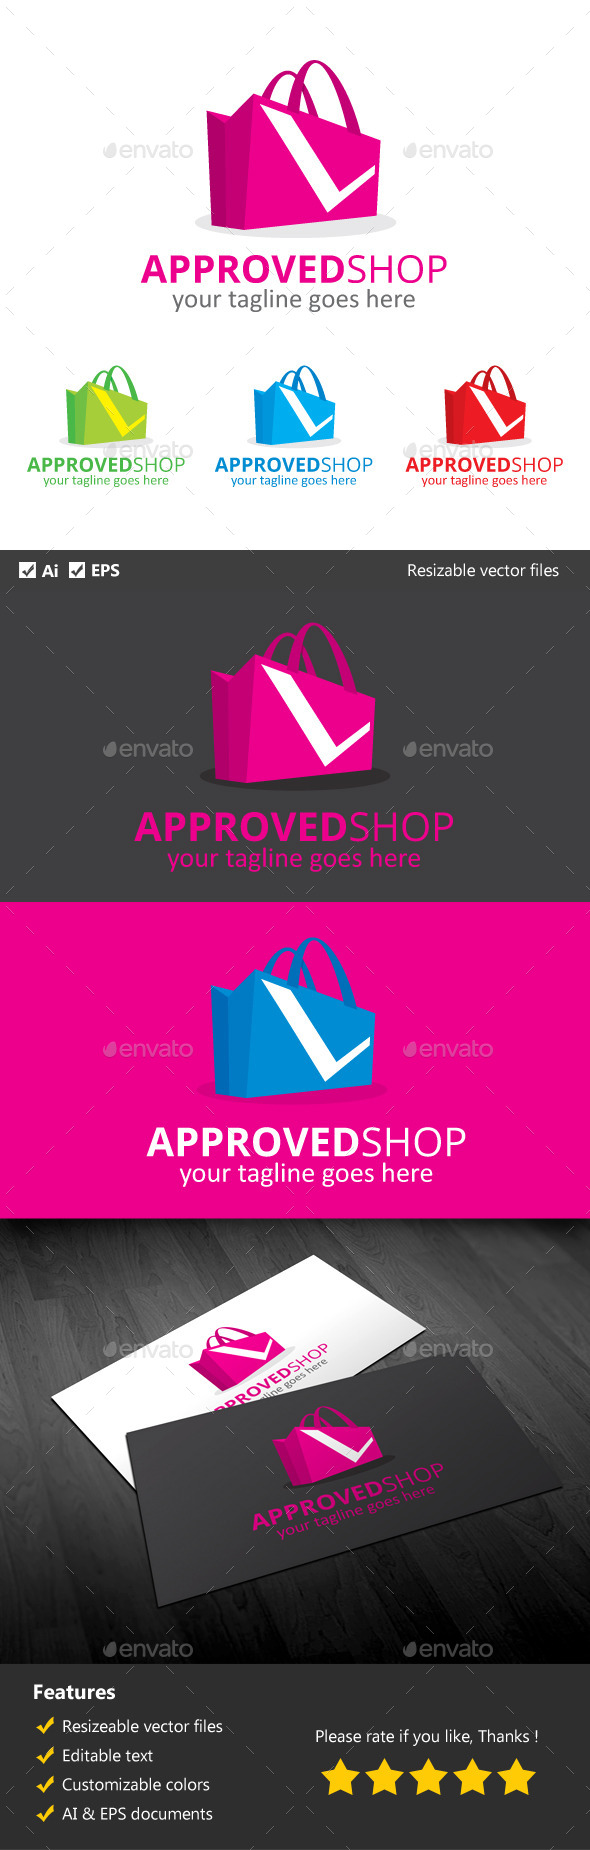 Approved Shop - Objects Logo Templates